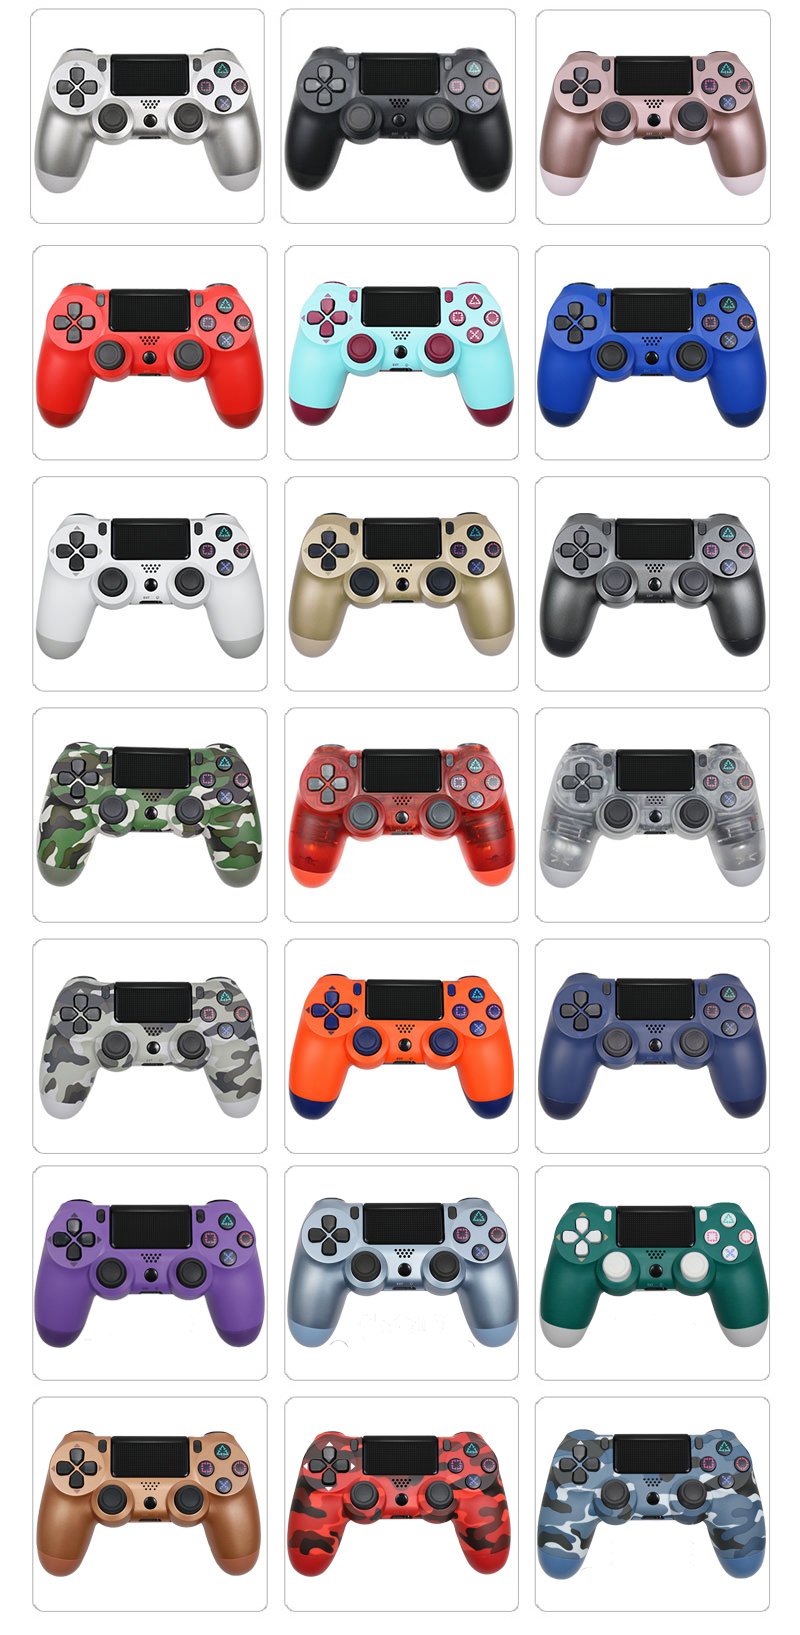 Bluetooth Gamepad and Wireless Game controller with Audio Function for PS4 and PS3 16